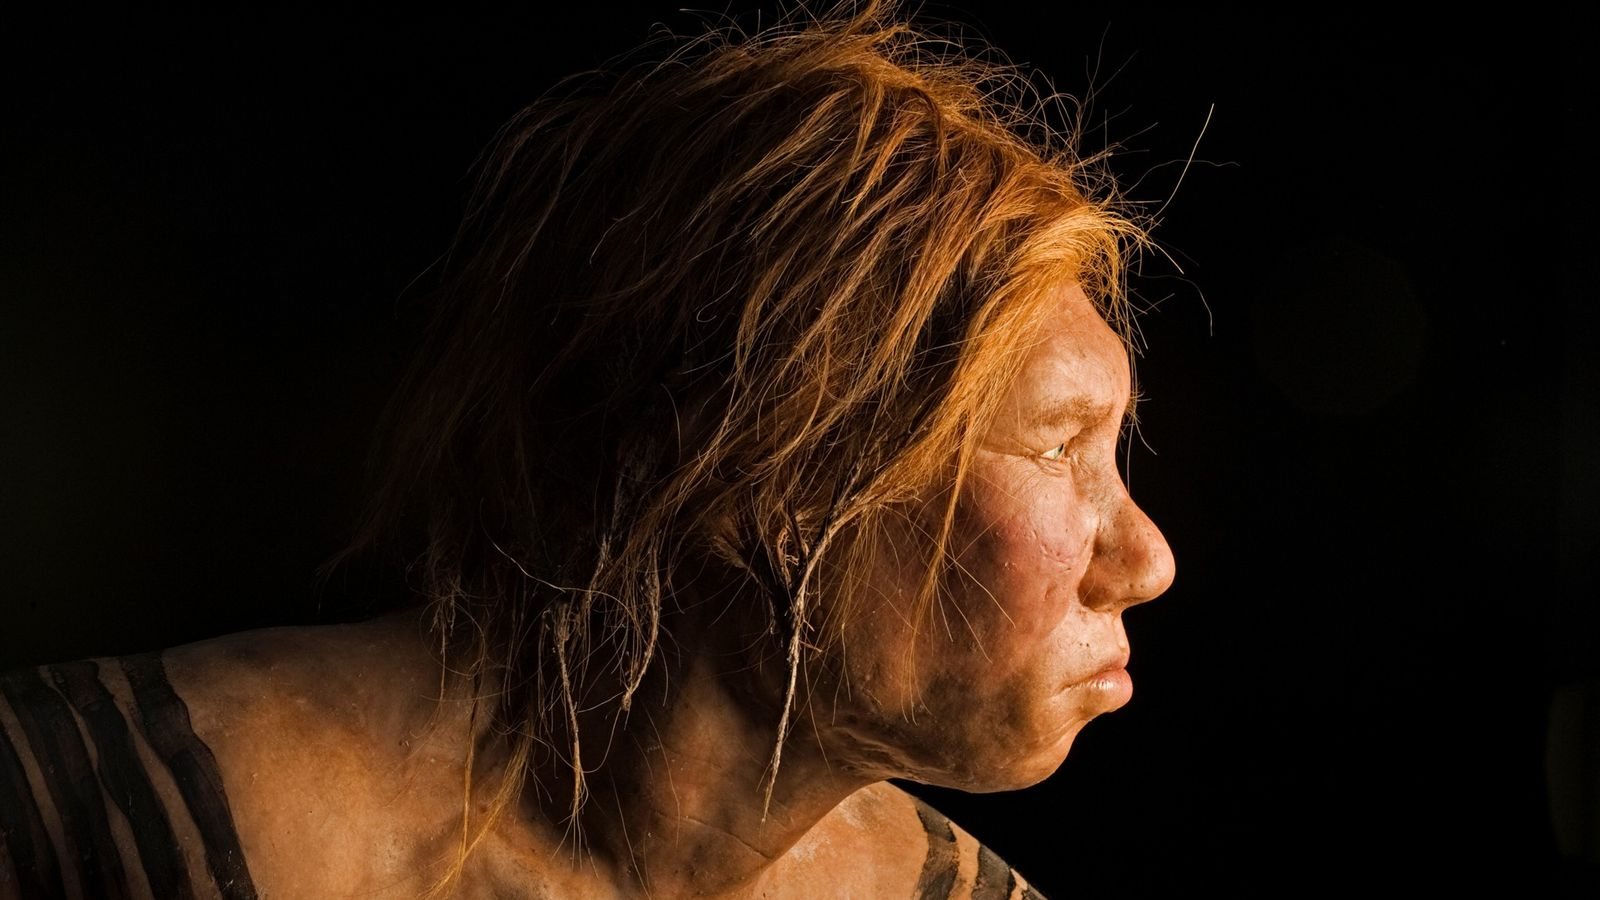 With the discovery of Neanderthal ancestry across African populations, researchers have now found traces of ancient ...